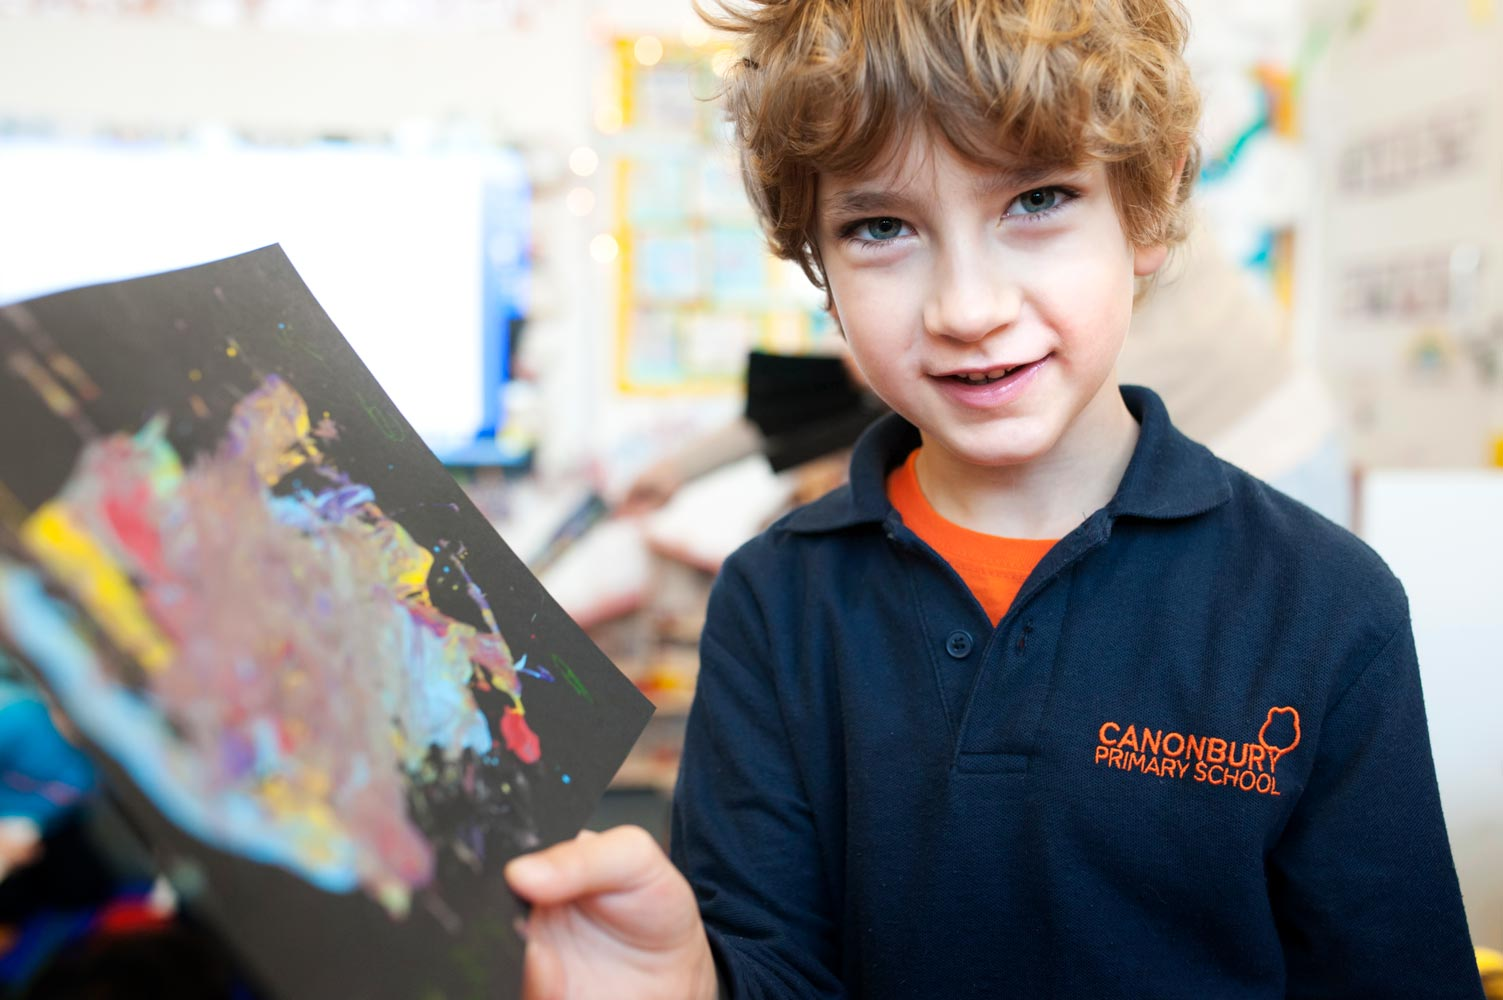 School pupil showing artwork to the camera